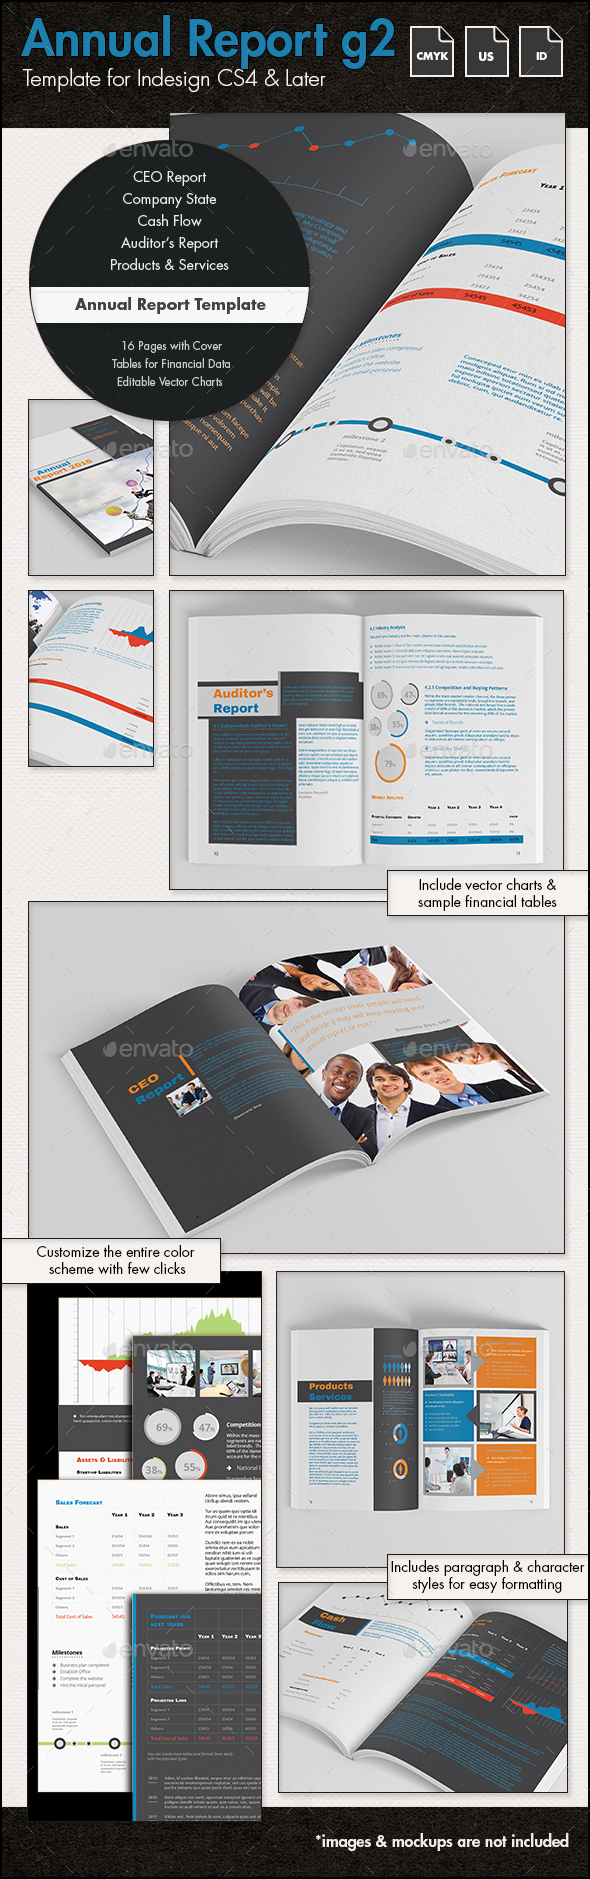 Annual Report Template g2 - US Letter - Informational Brochures